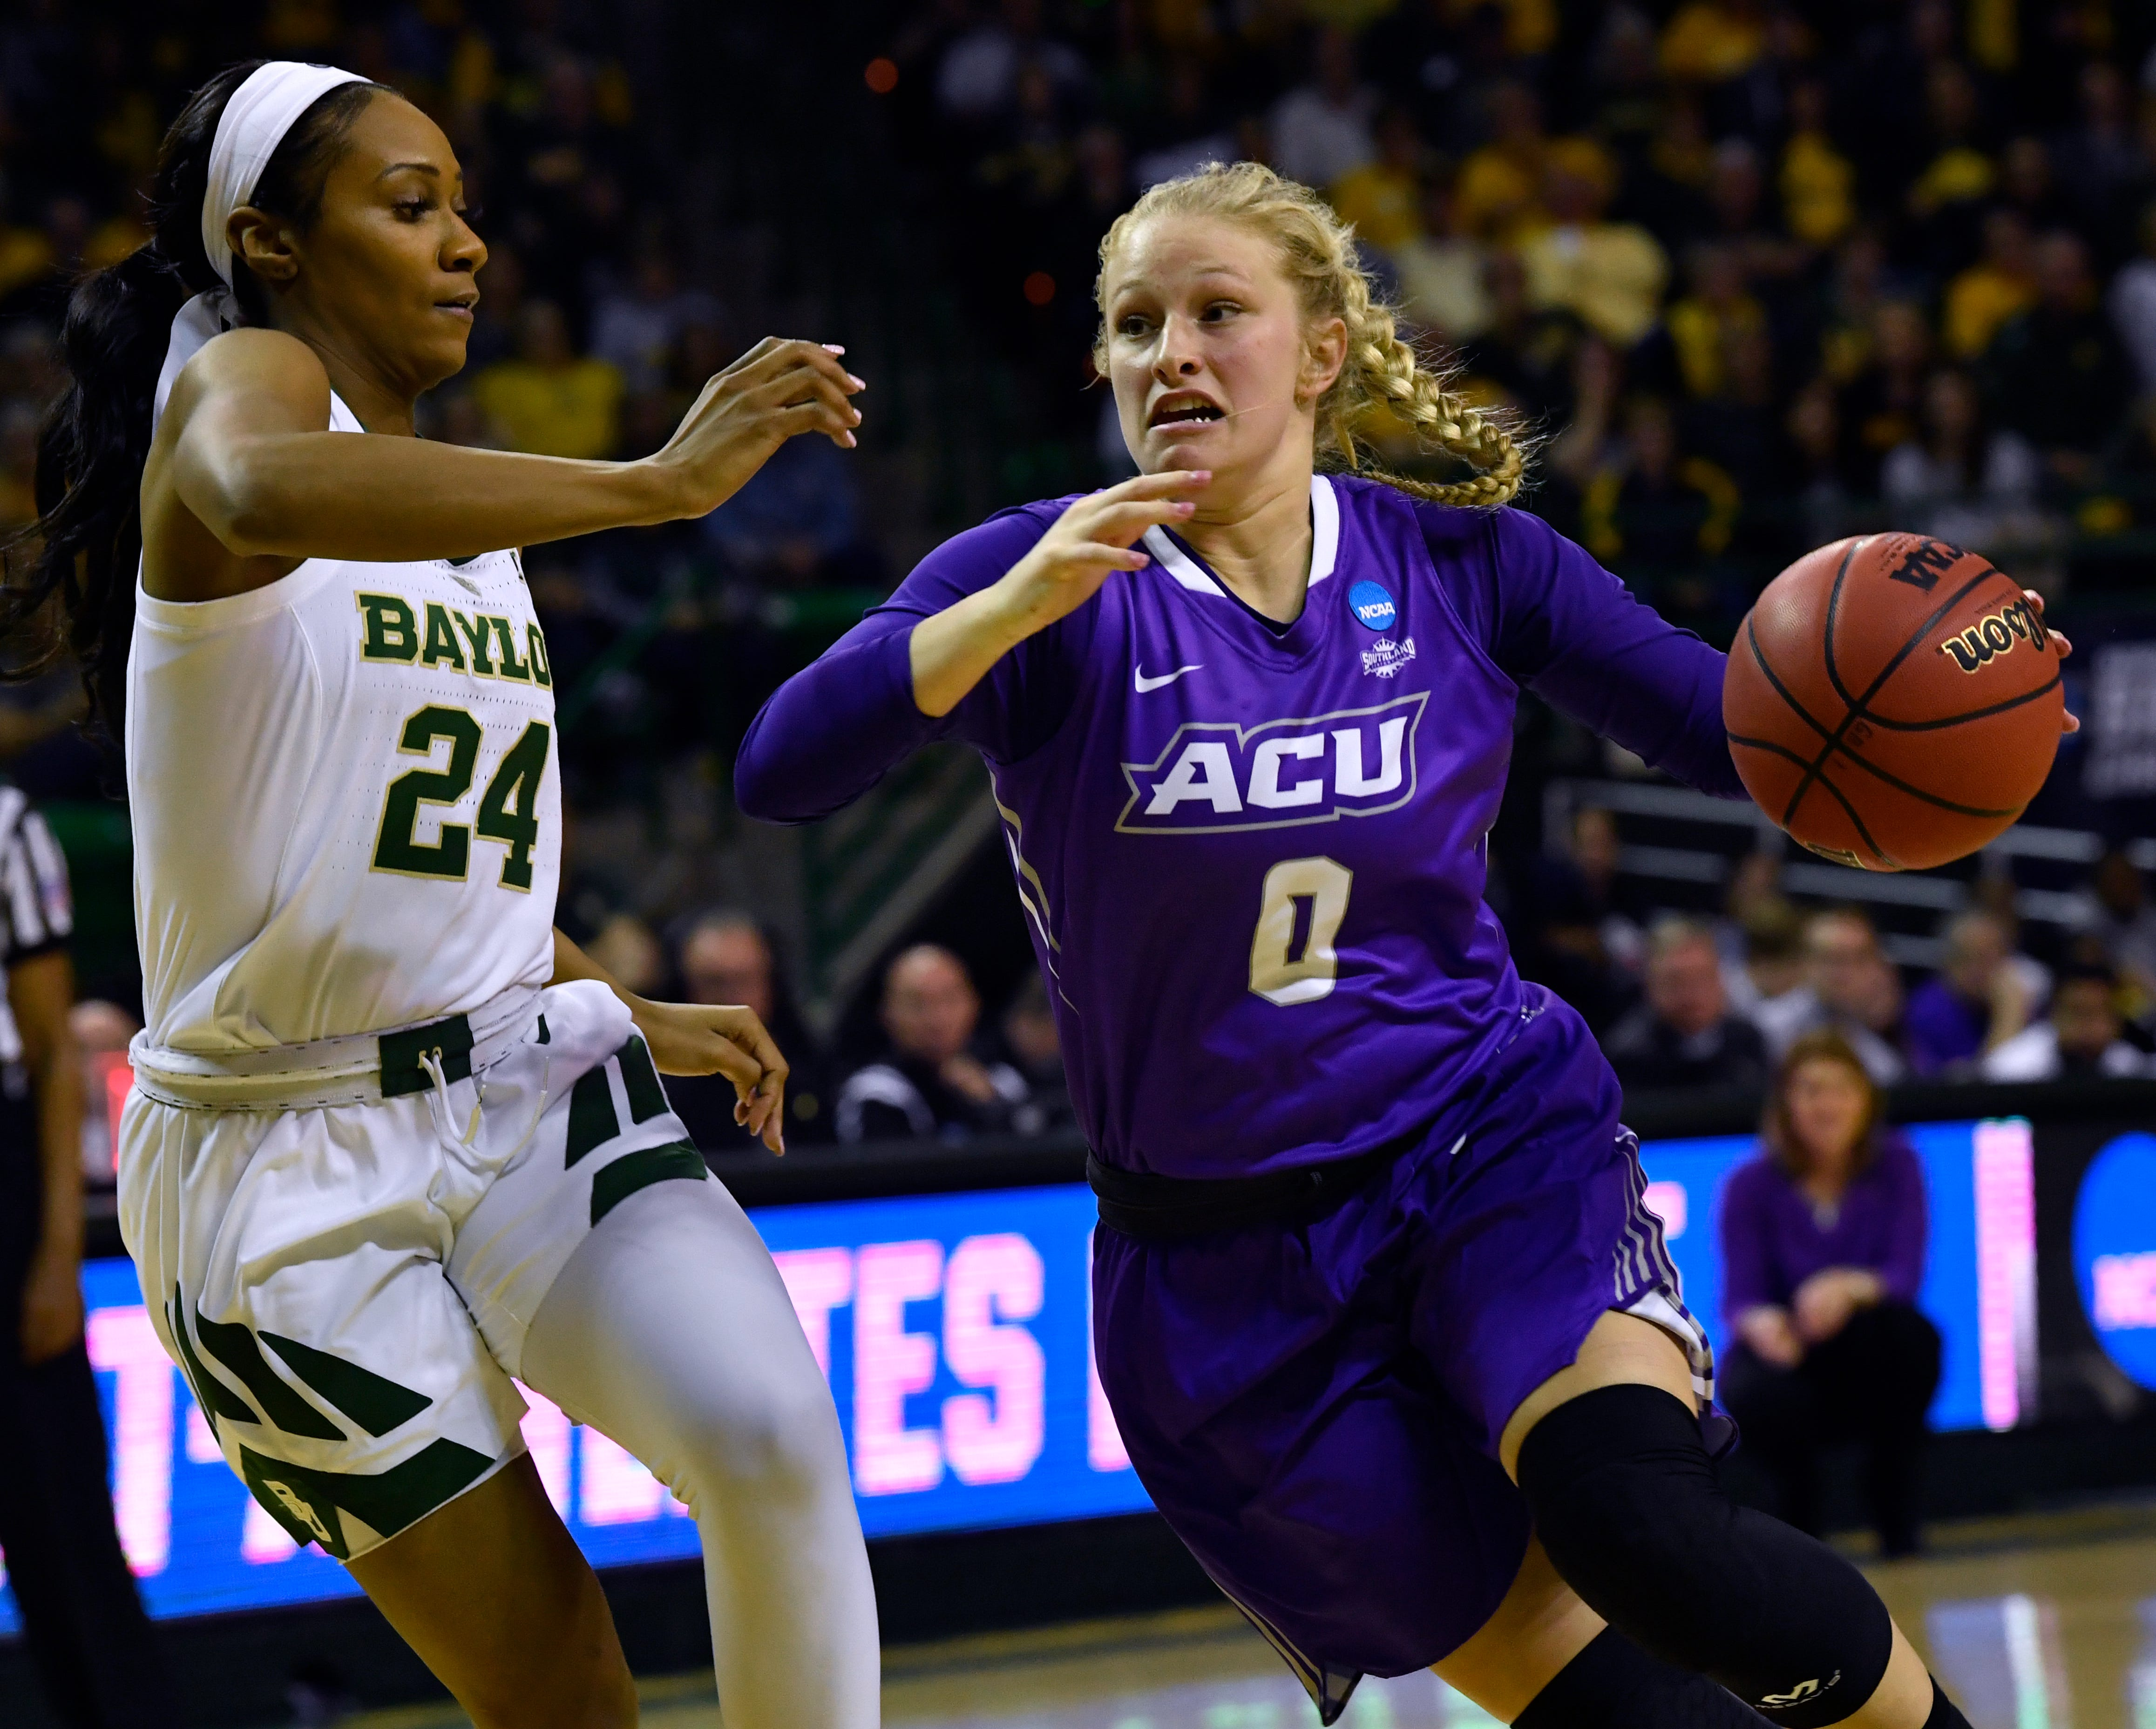 ACU's Kamryn Mraz drives past Baylor's Chloe Jackson during Round 1 of Saturday's NCAA Div. 1 women's basketball in Waco.